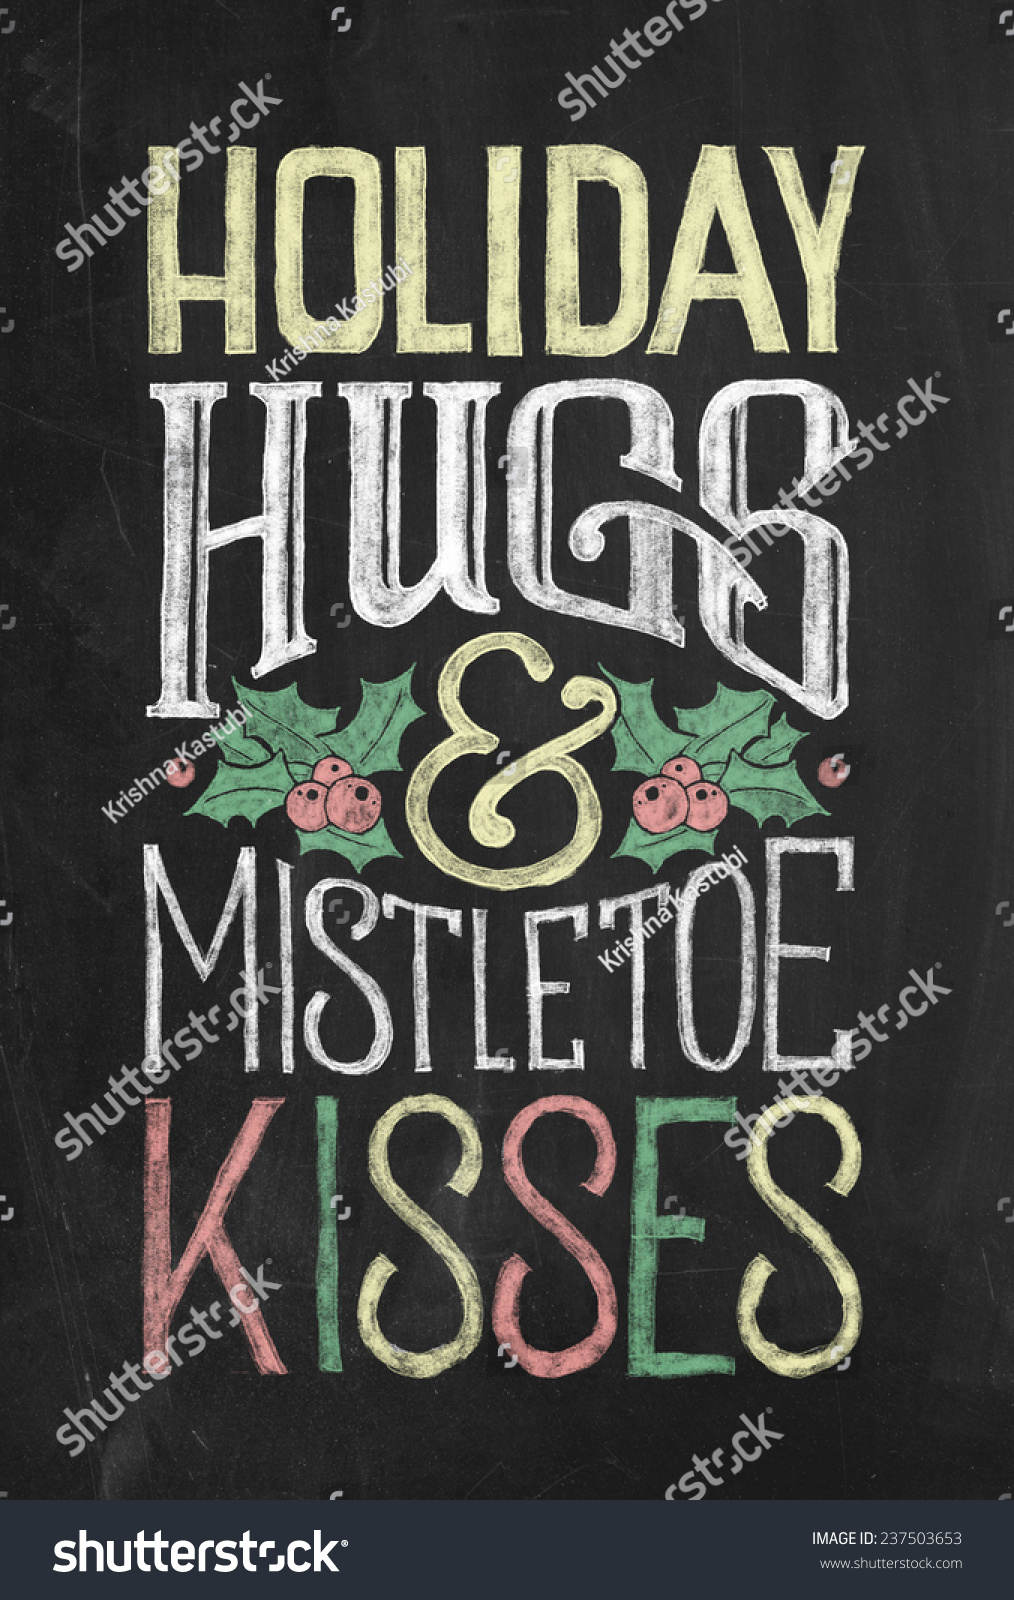 holiday hugs mistletoe kisses hand drawn stock illustration